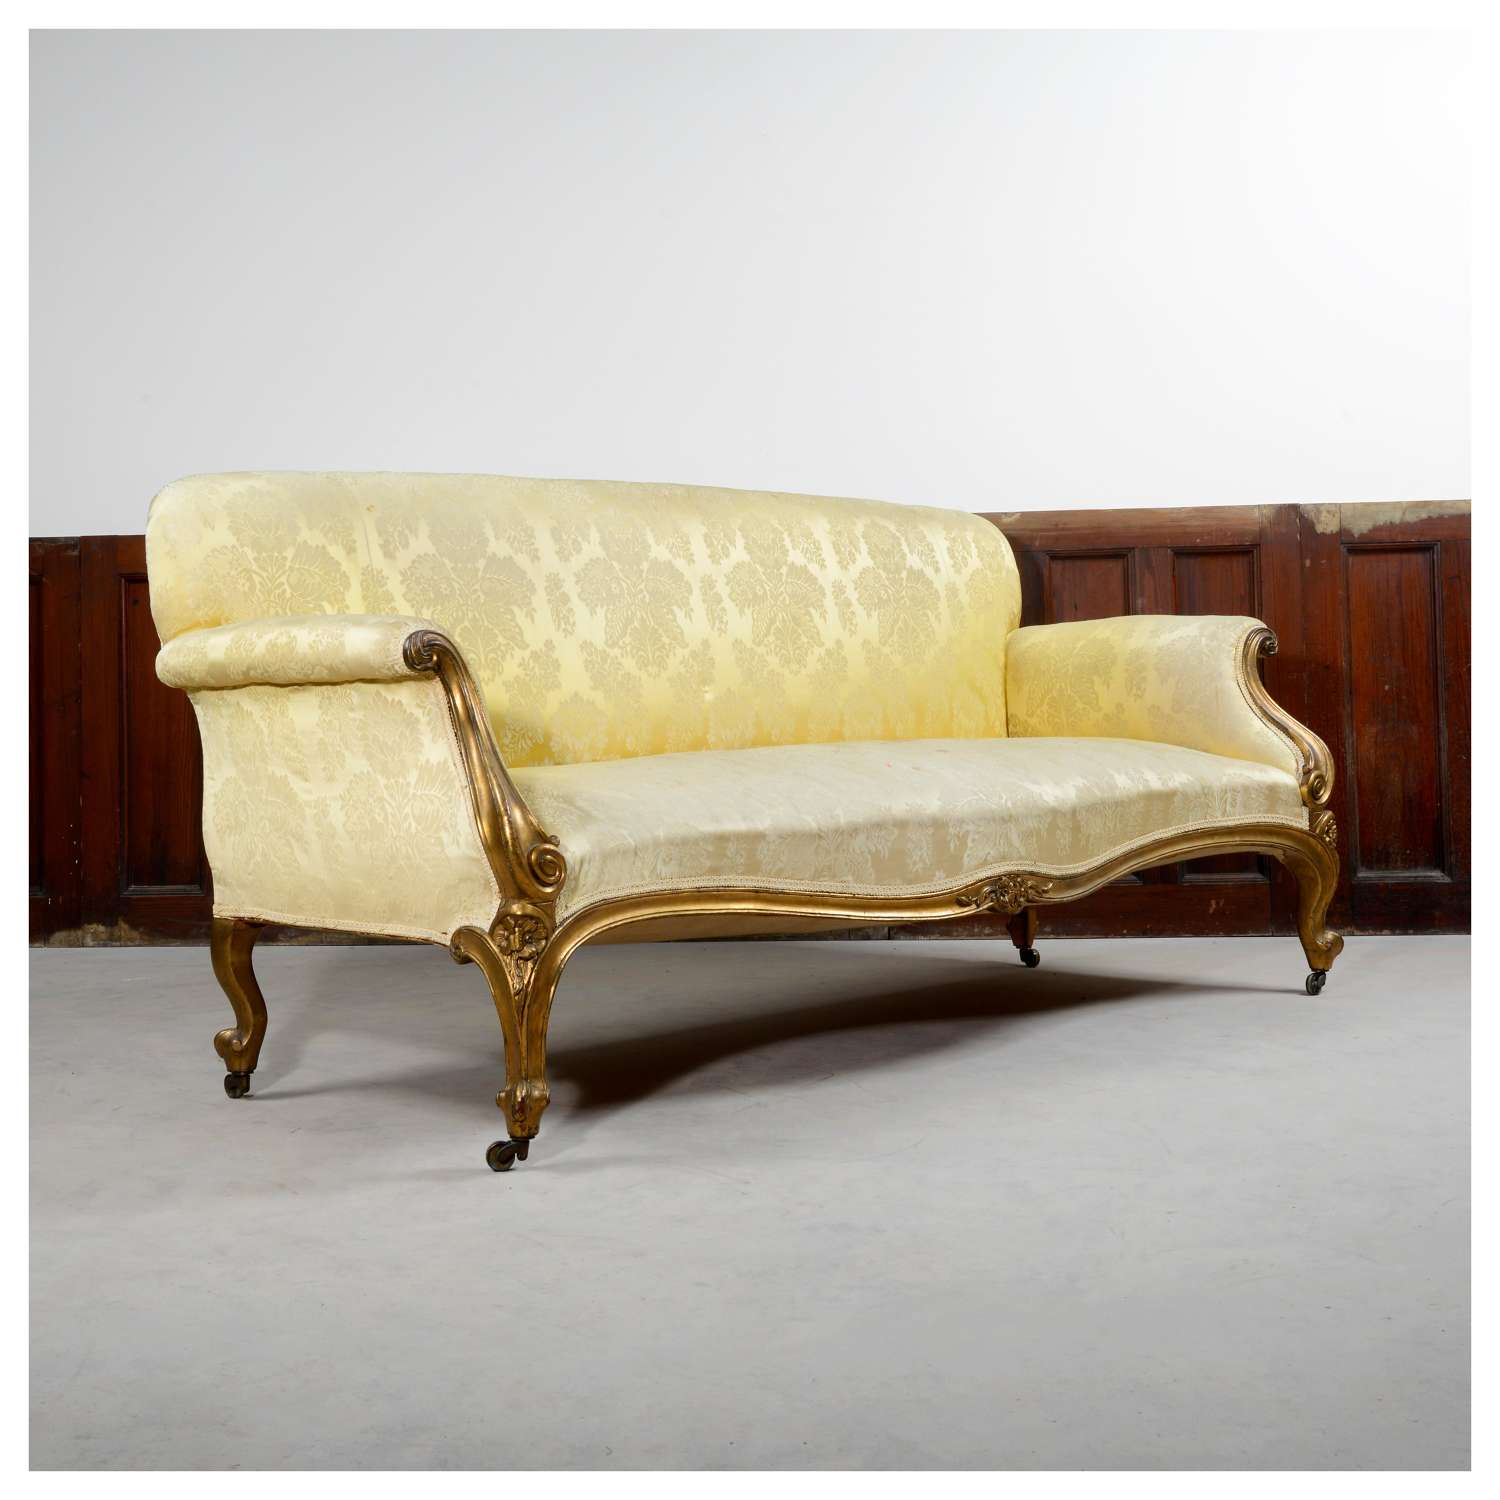 French Louis XV style gilt sofa, or settee